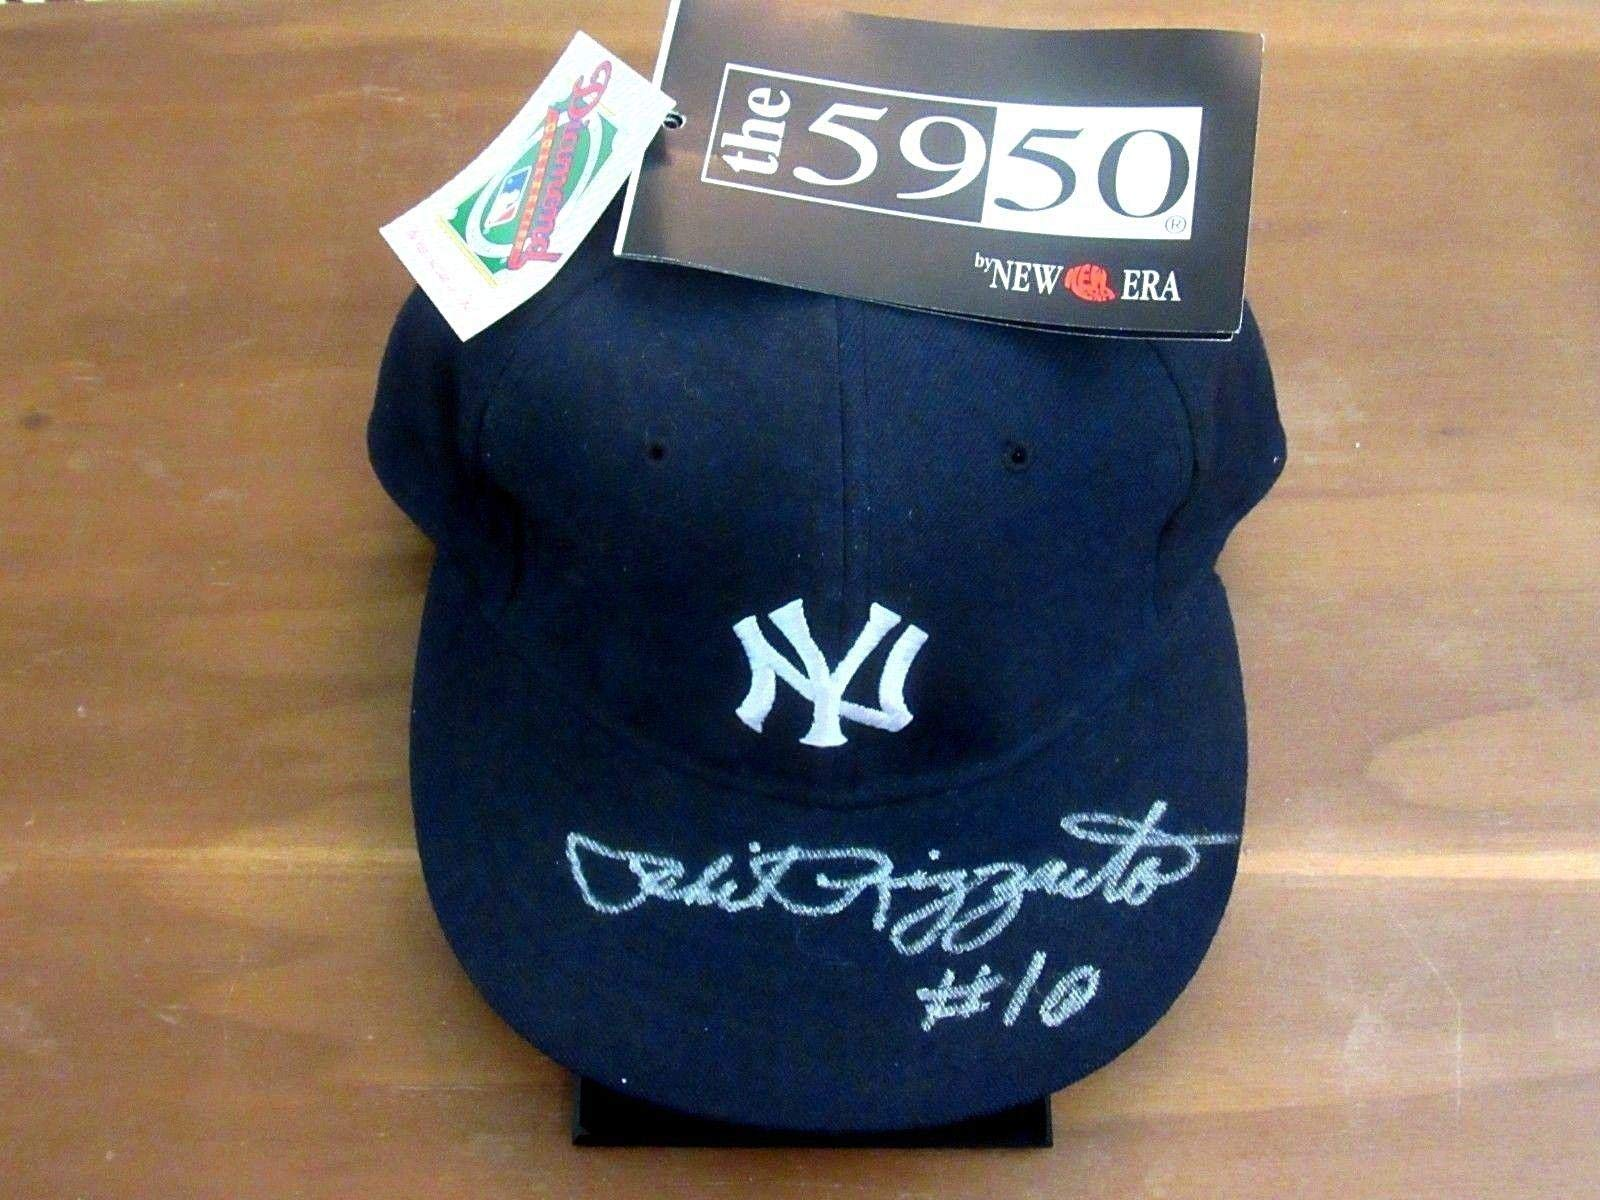 Phil Rizzuto # 10 New York Yankees Hof Signed Auto New Era 5950 Pro Cap JSA Certified Autographed Hats